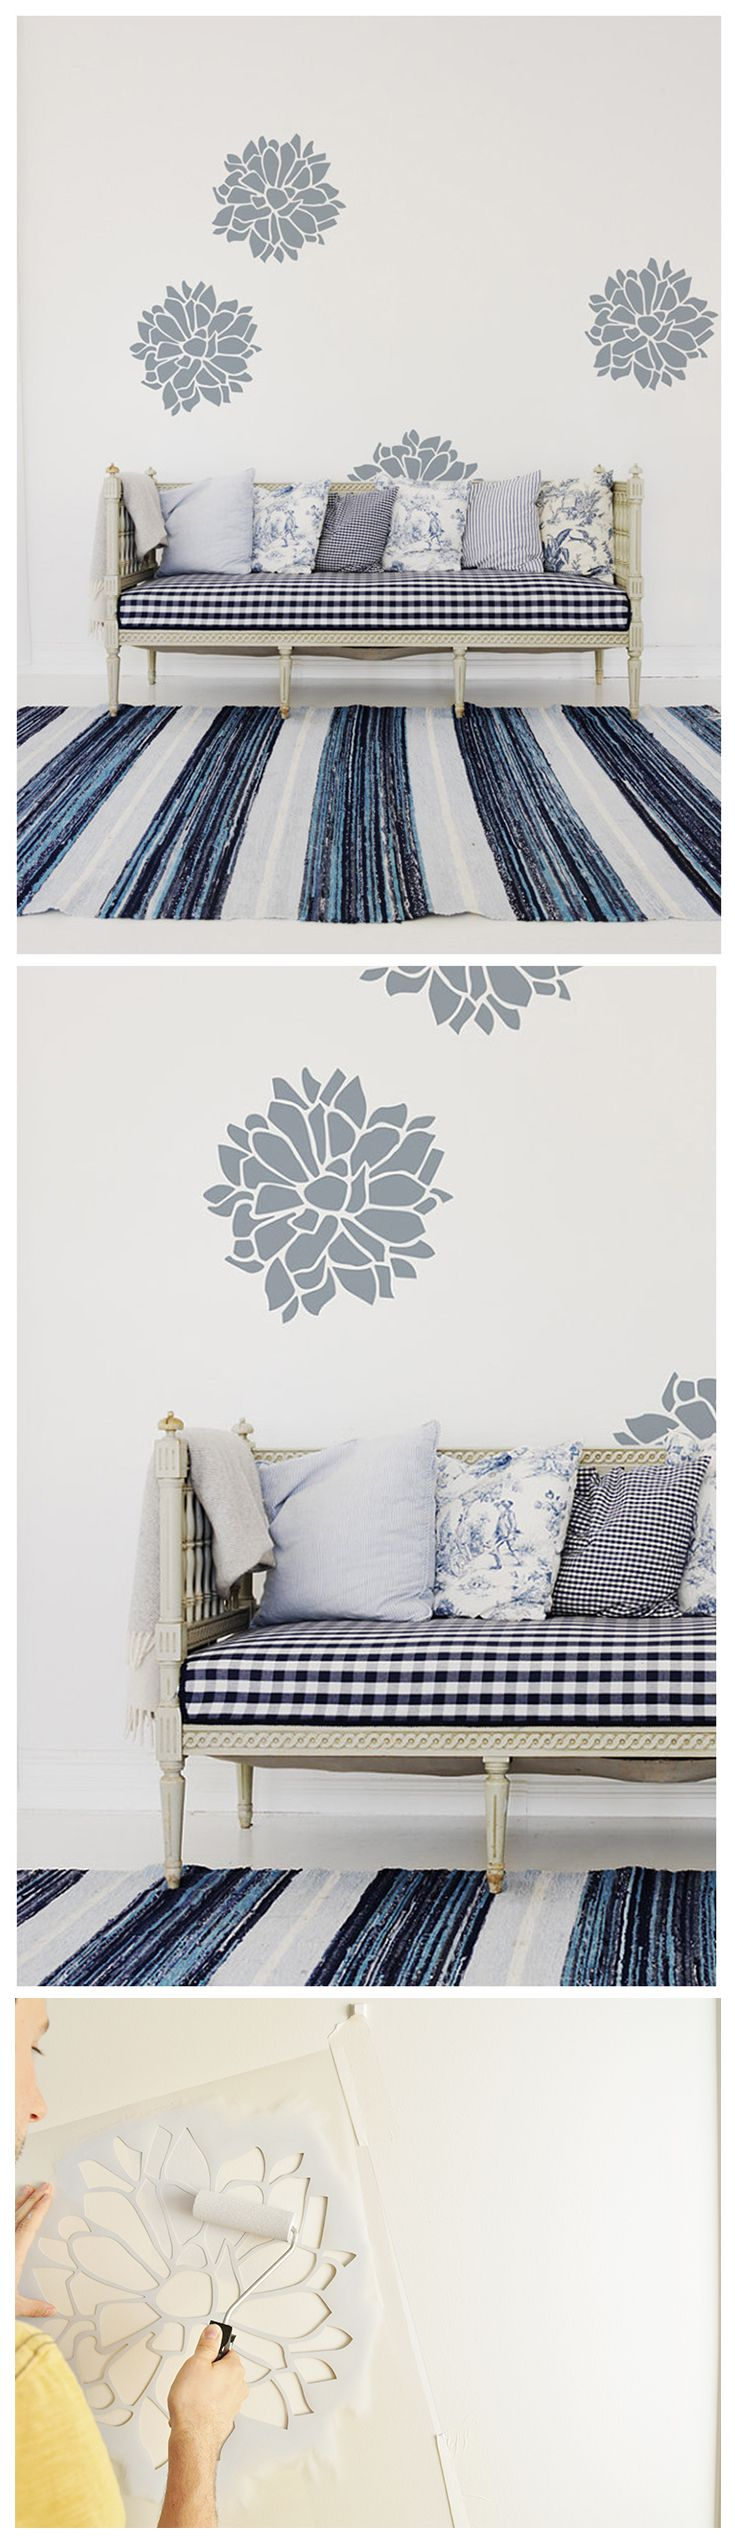 best images about officecraft room on pinterest